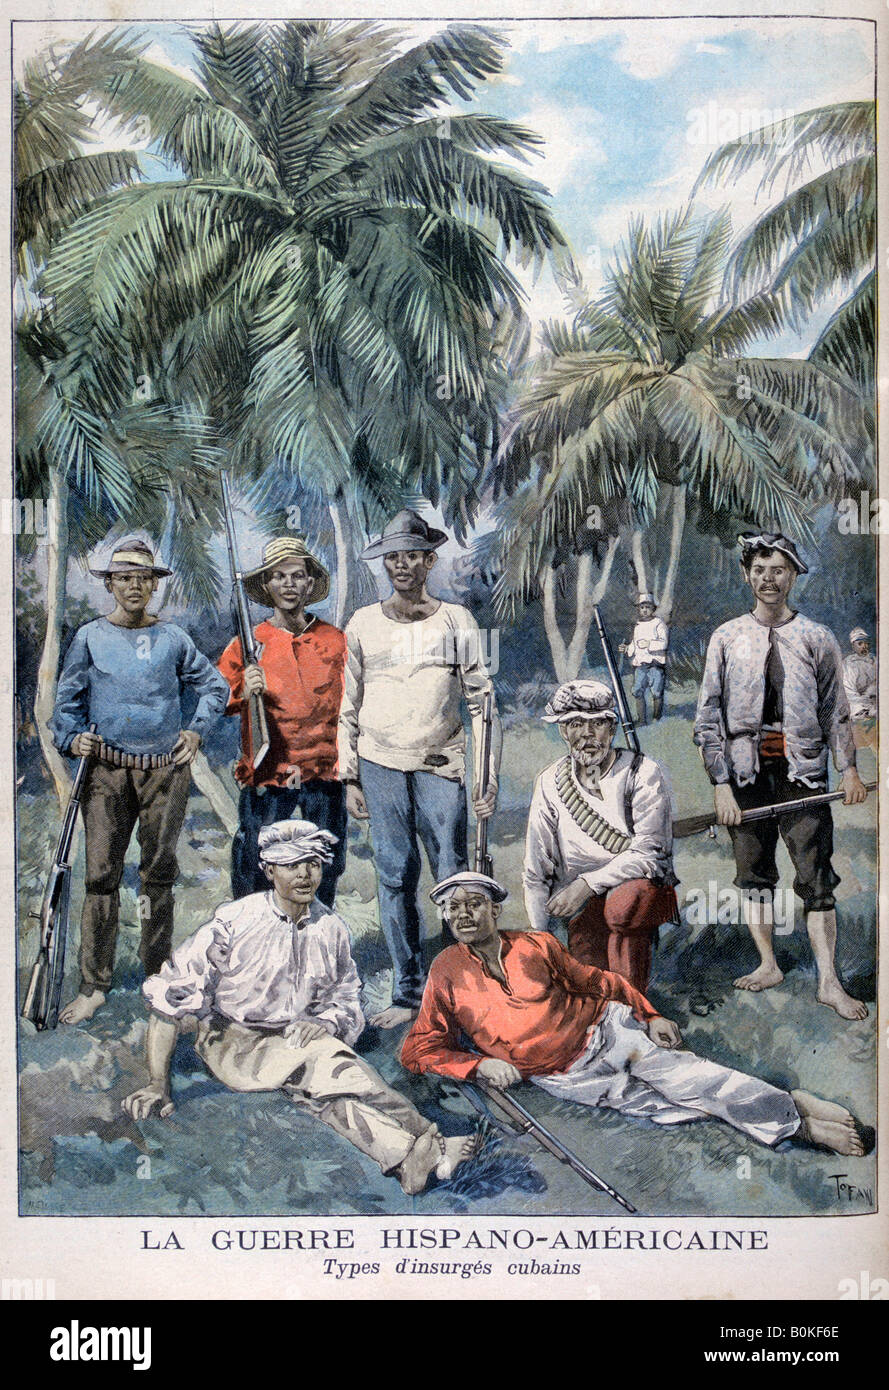 cuban rebellion the spanish american war Fought in 1898, the spanish-american war saw the us win a quick victory following the successful invasions of the philippines, puerto rico and cuba.